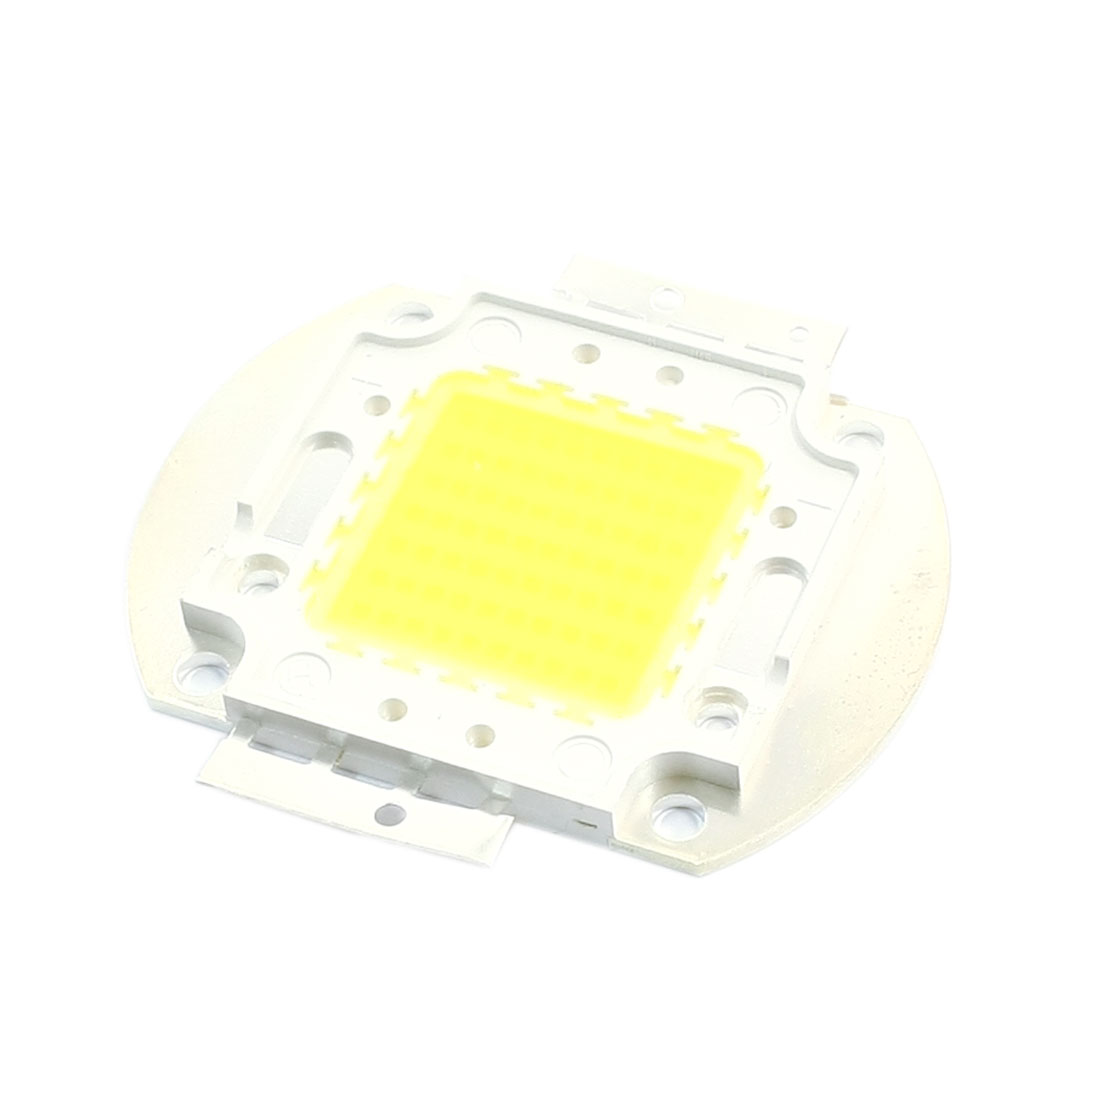 32-34V 2400mA 70W Watt 6600-6800LM White Illuminated Lamp Light SMD Chip High Power LED Emitter